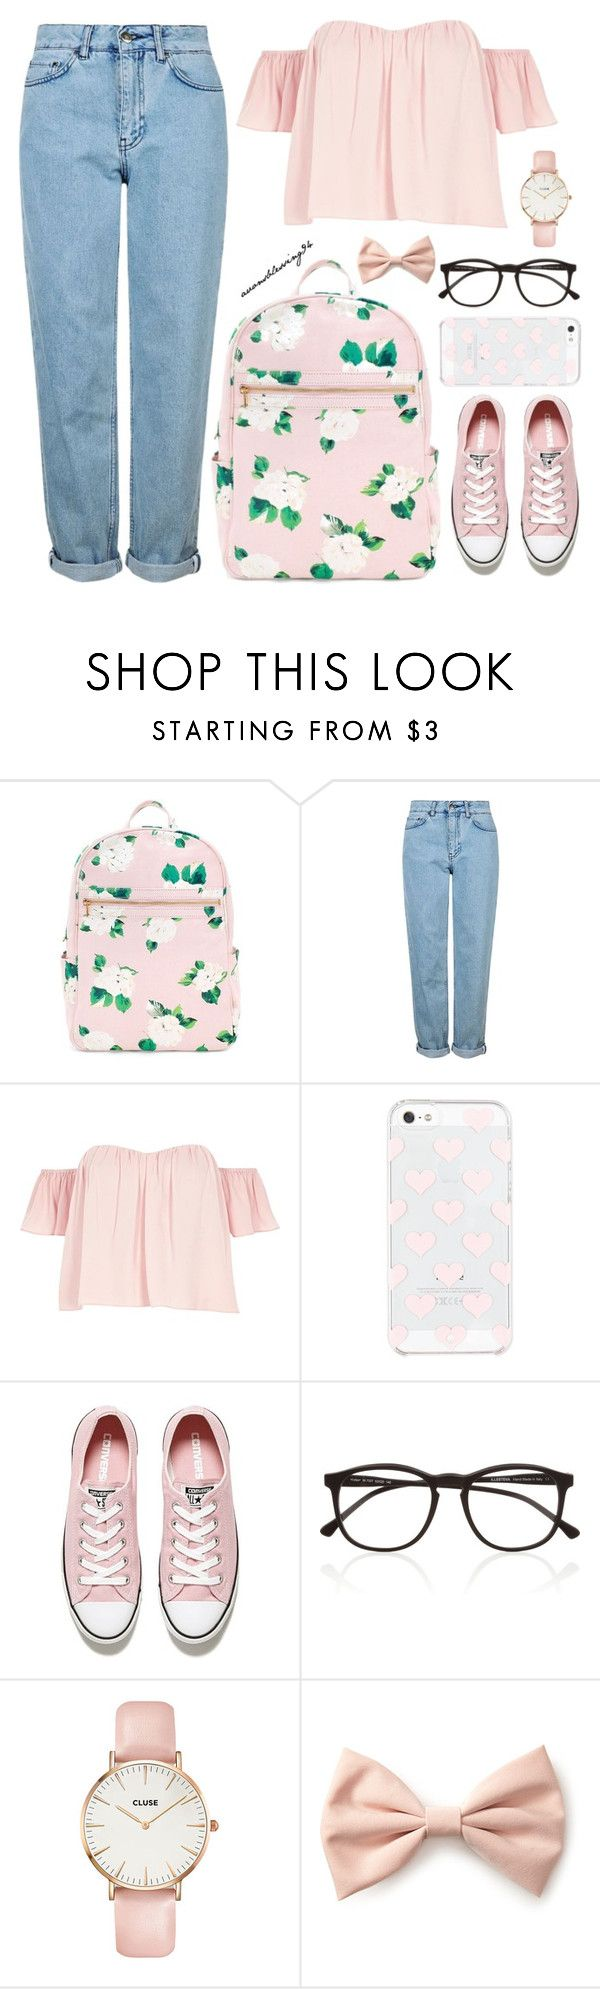 """""""Back To School"""" by avonsblessing94 ❤ liked on Polyvore featuring Topshop, River Island, Kate Spade, Converse, Illesteva, CLUSE and Forever 21"""